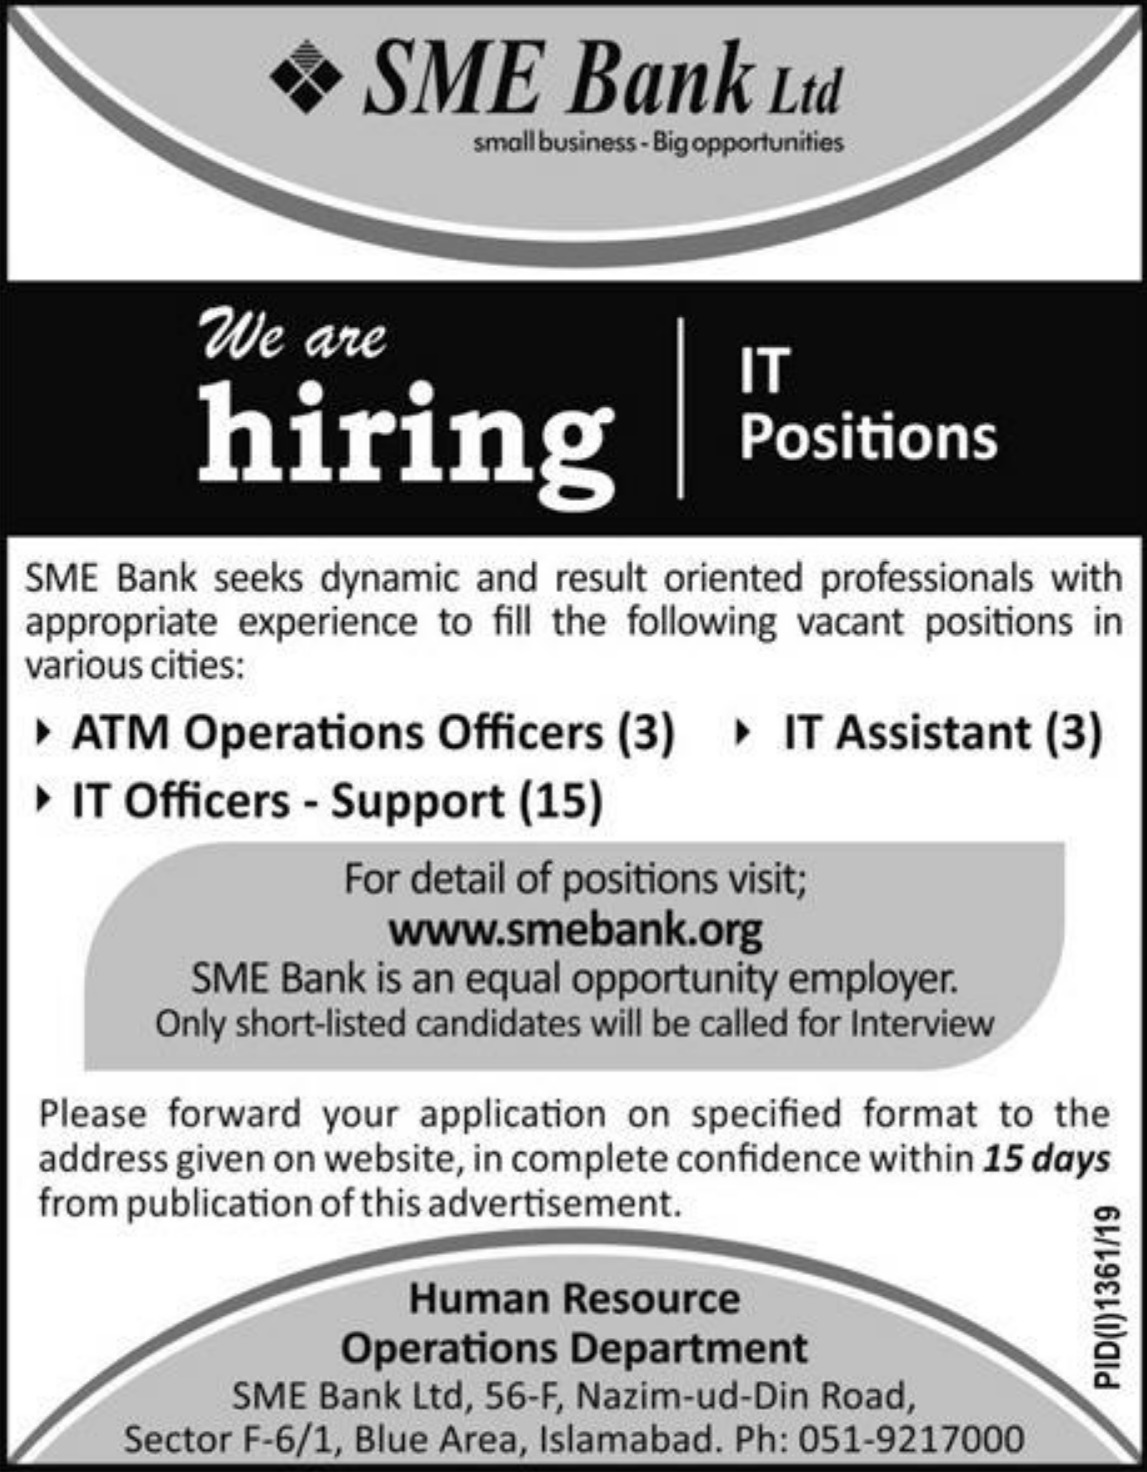 SME Bank Ltd Jobs 2019 Pakistan